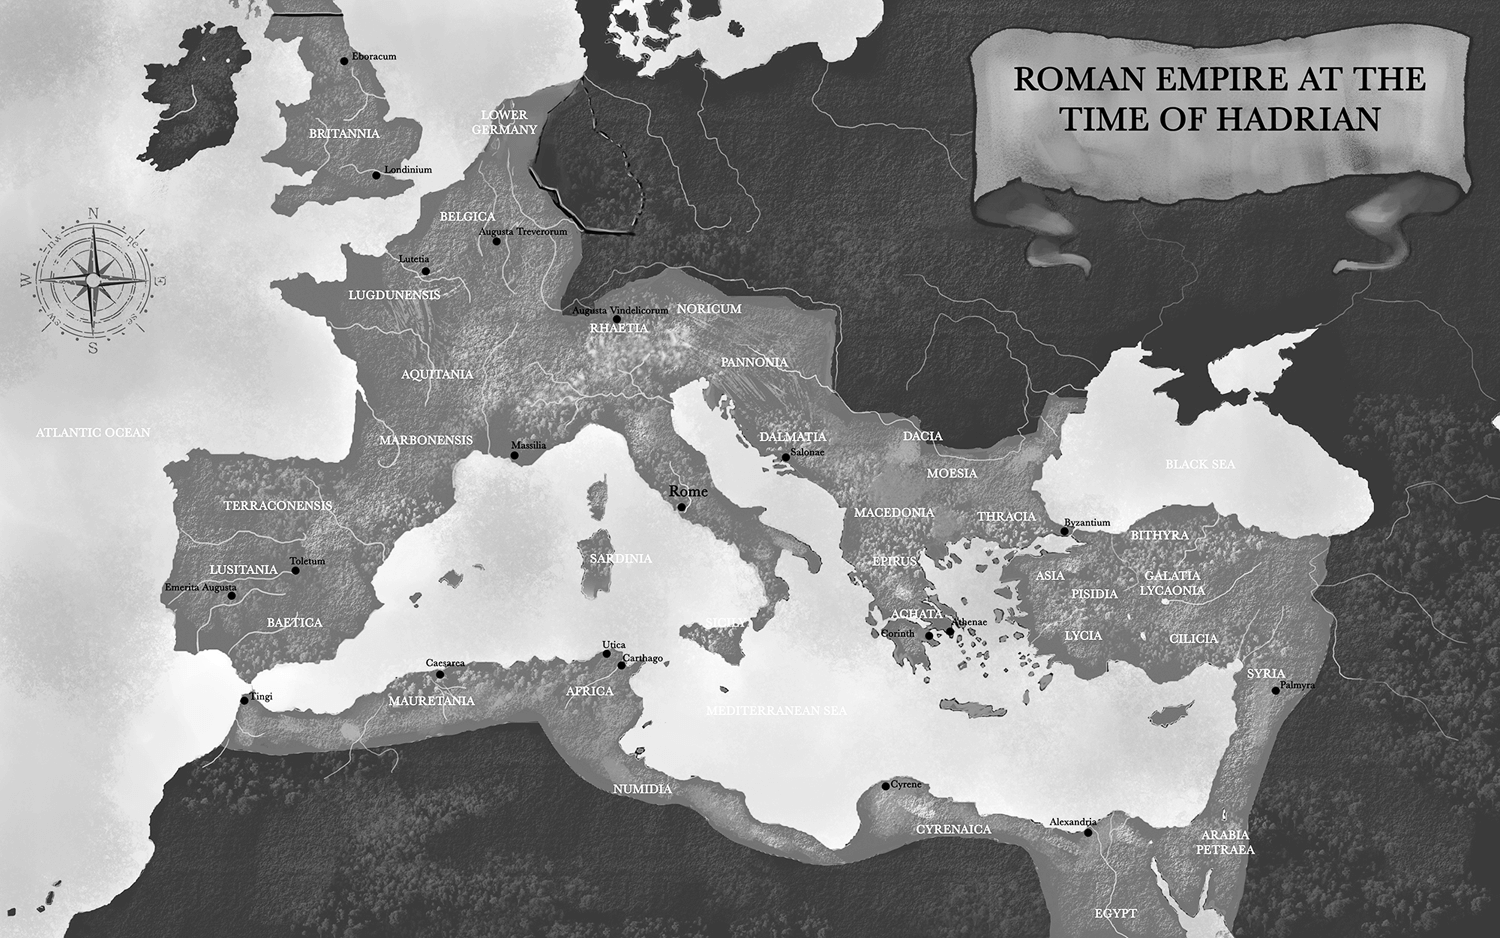 Roman-Empire-at-the-Time-of-Hadrian